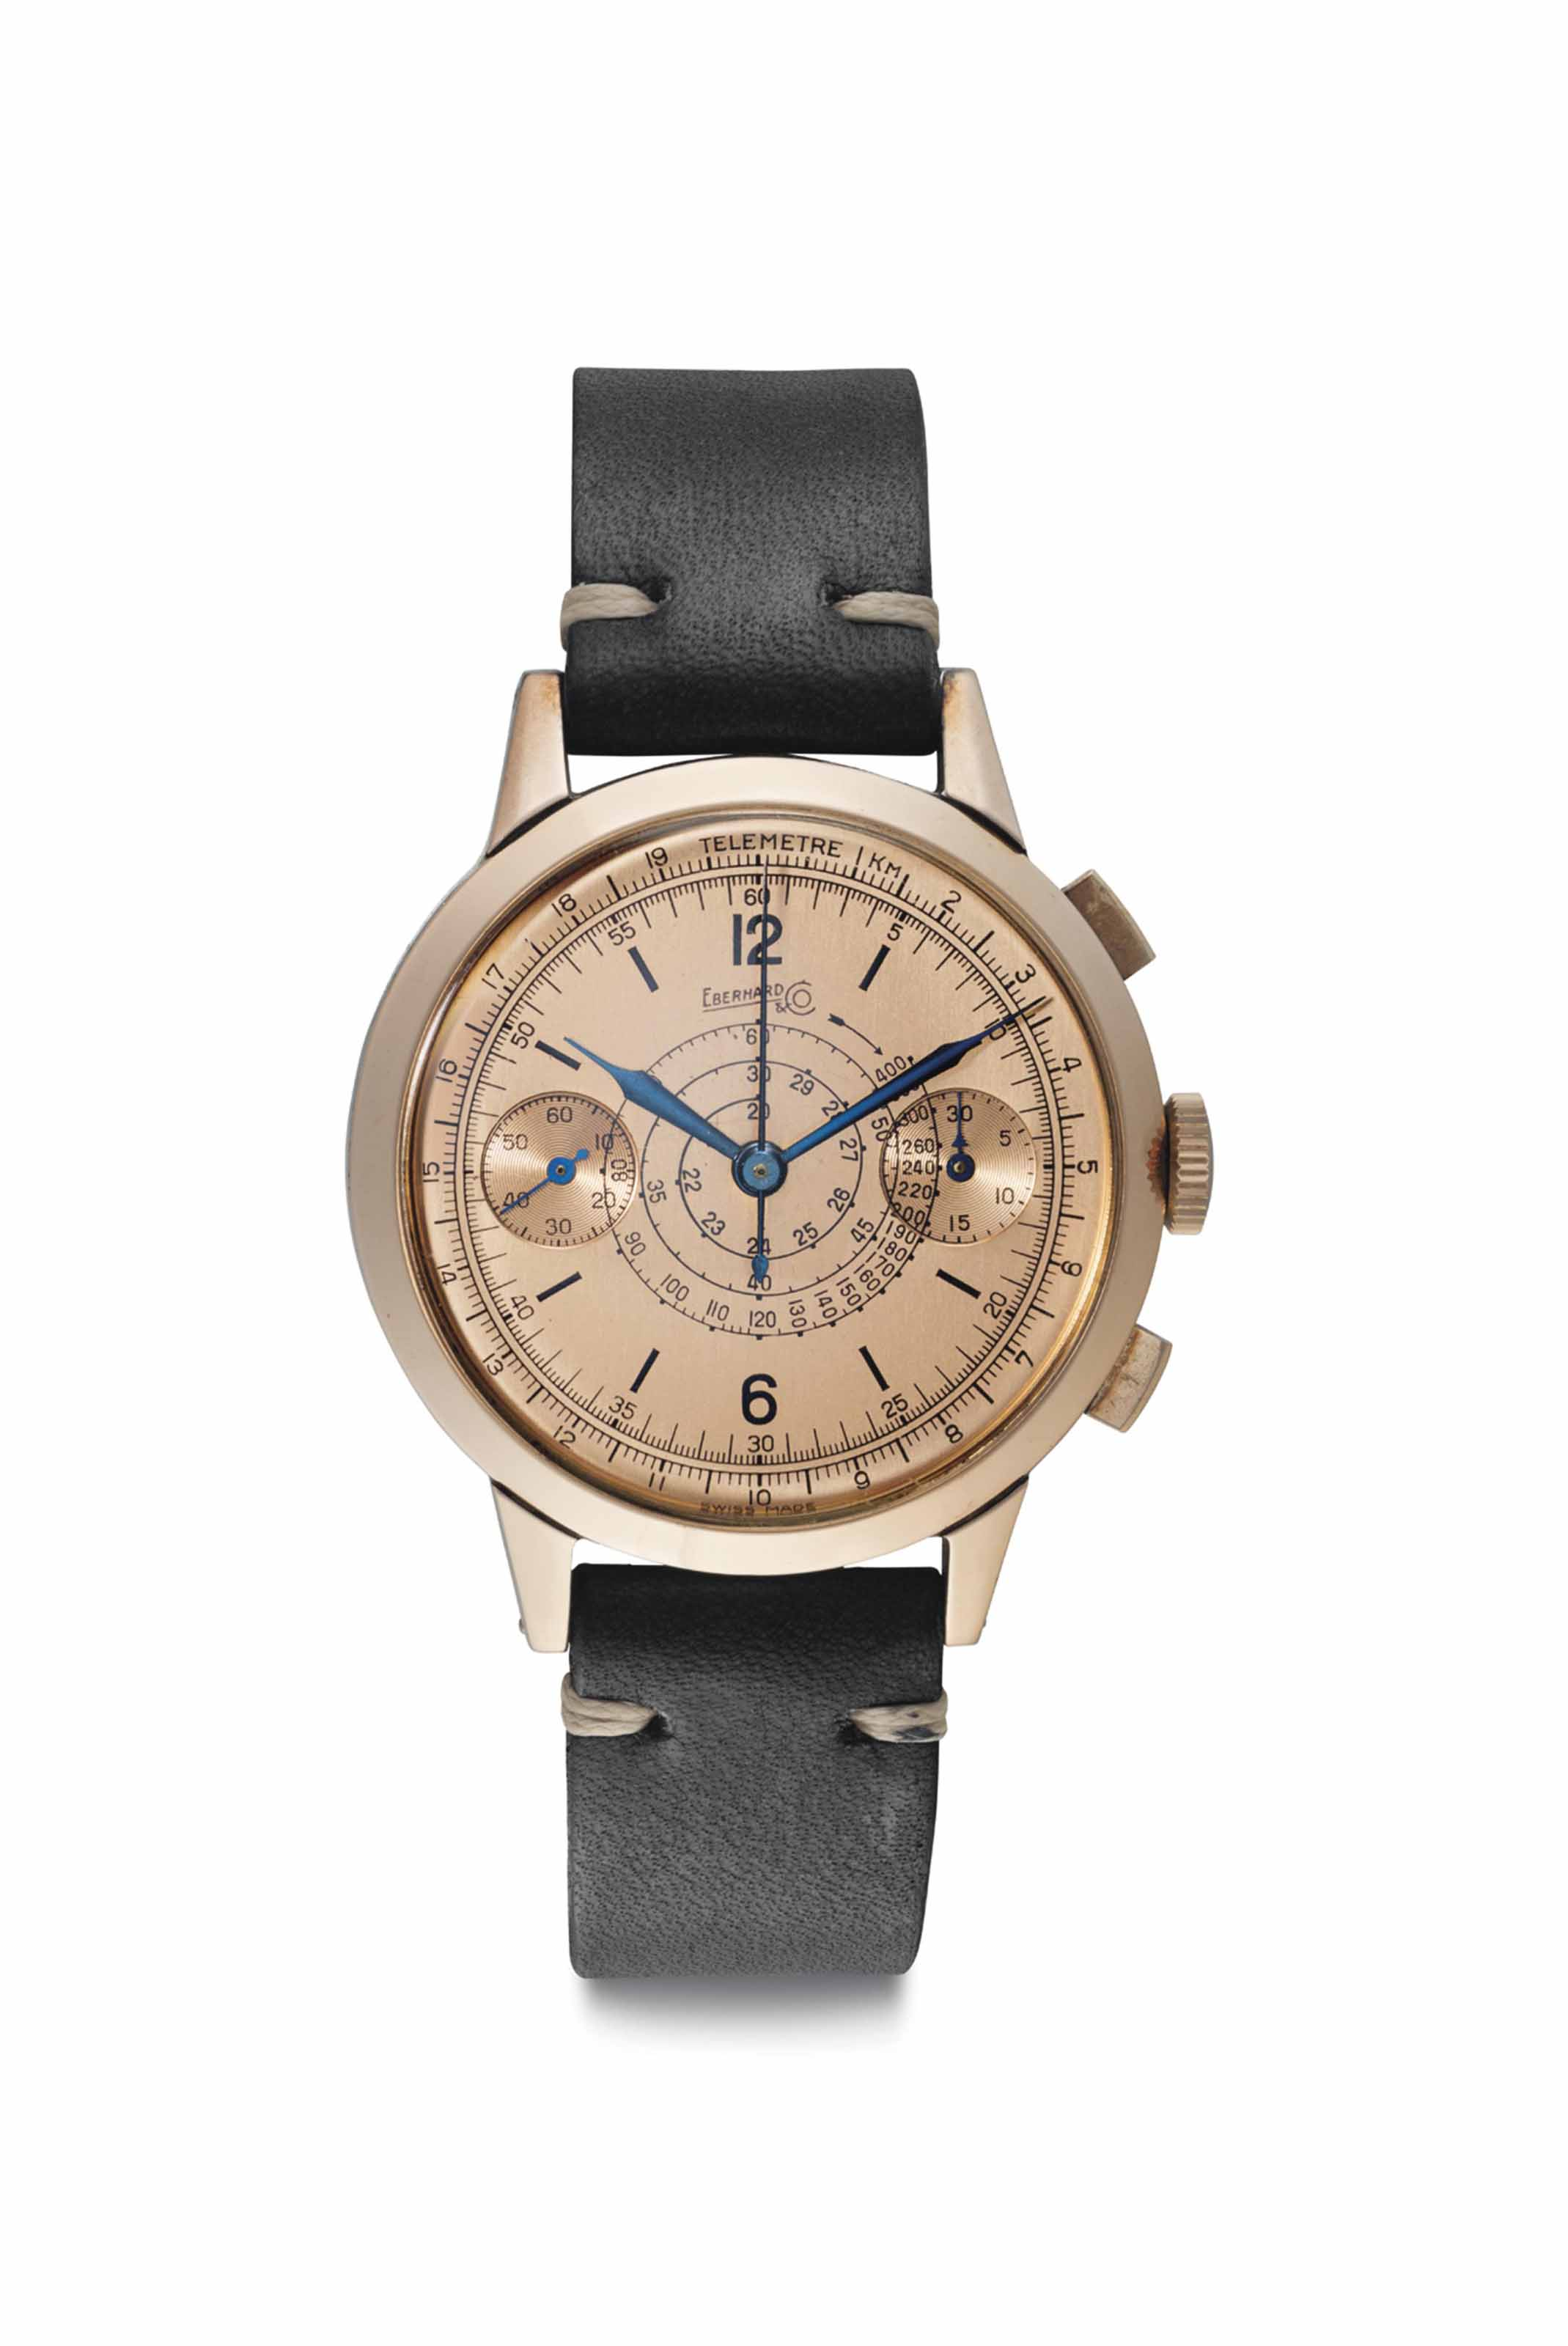 Eberhard. An 18k Pink Gold and Stainless Steel Chronograph Wristwatch with Pink Dial